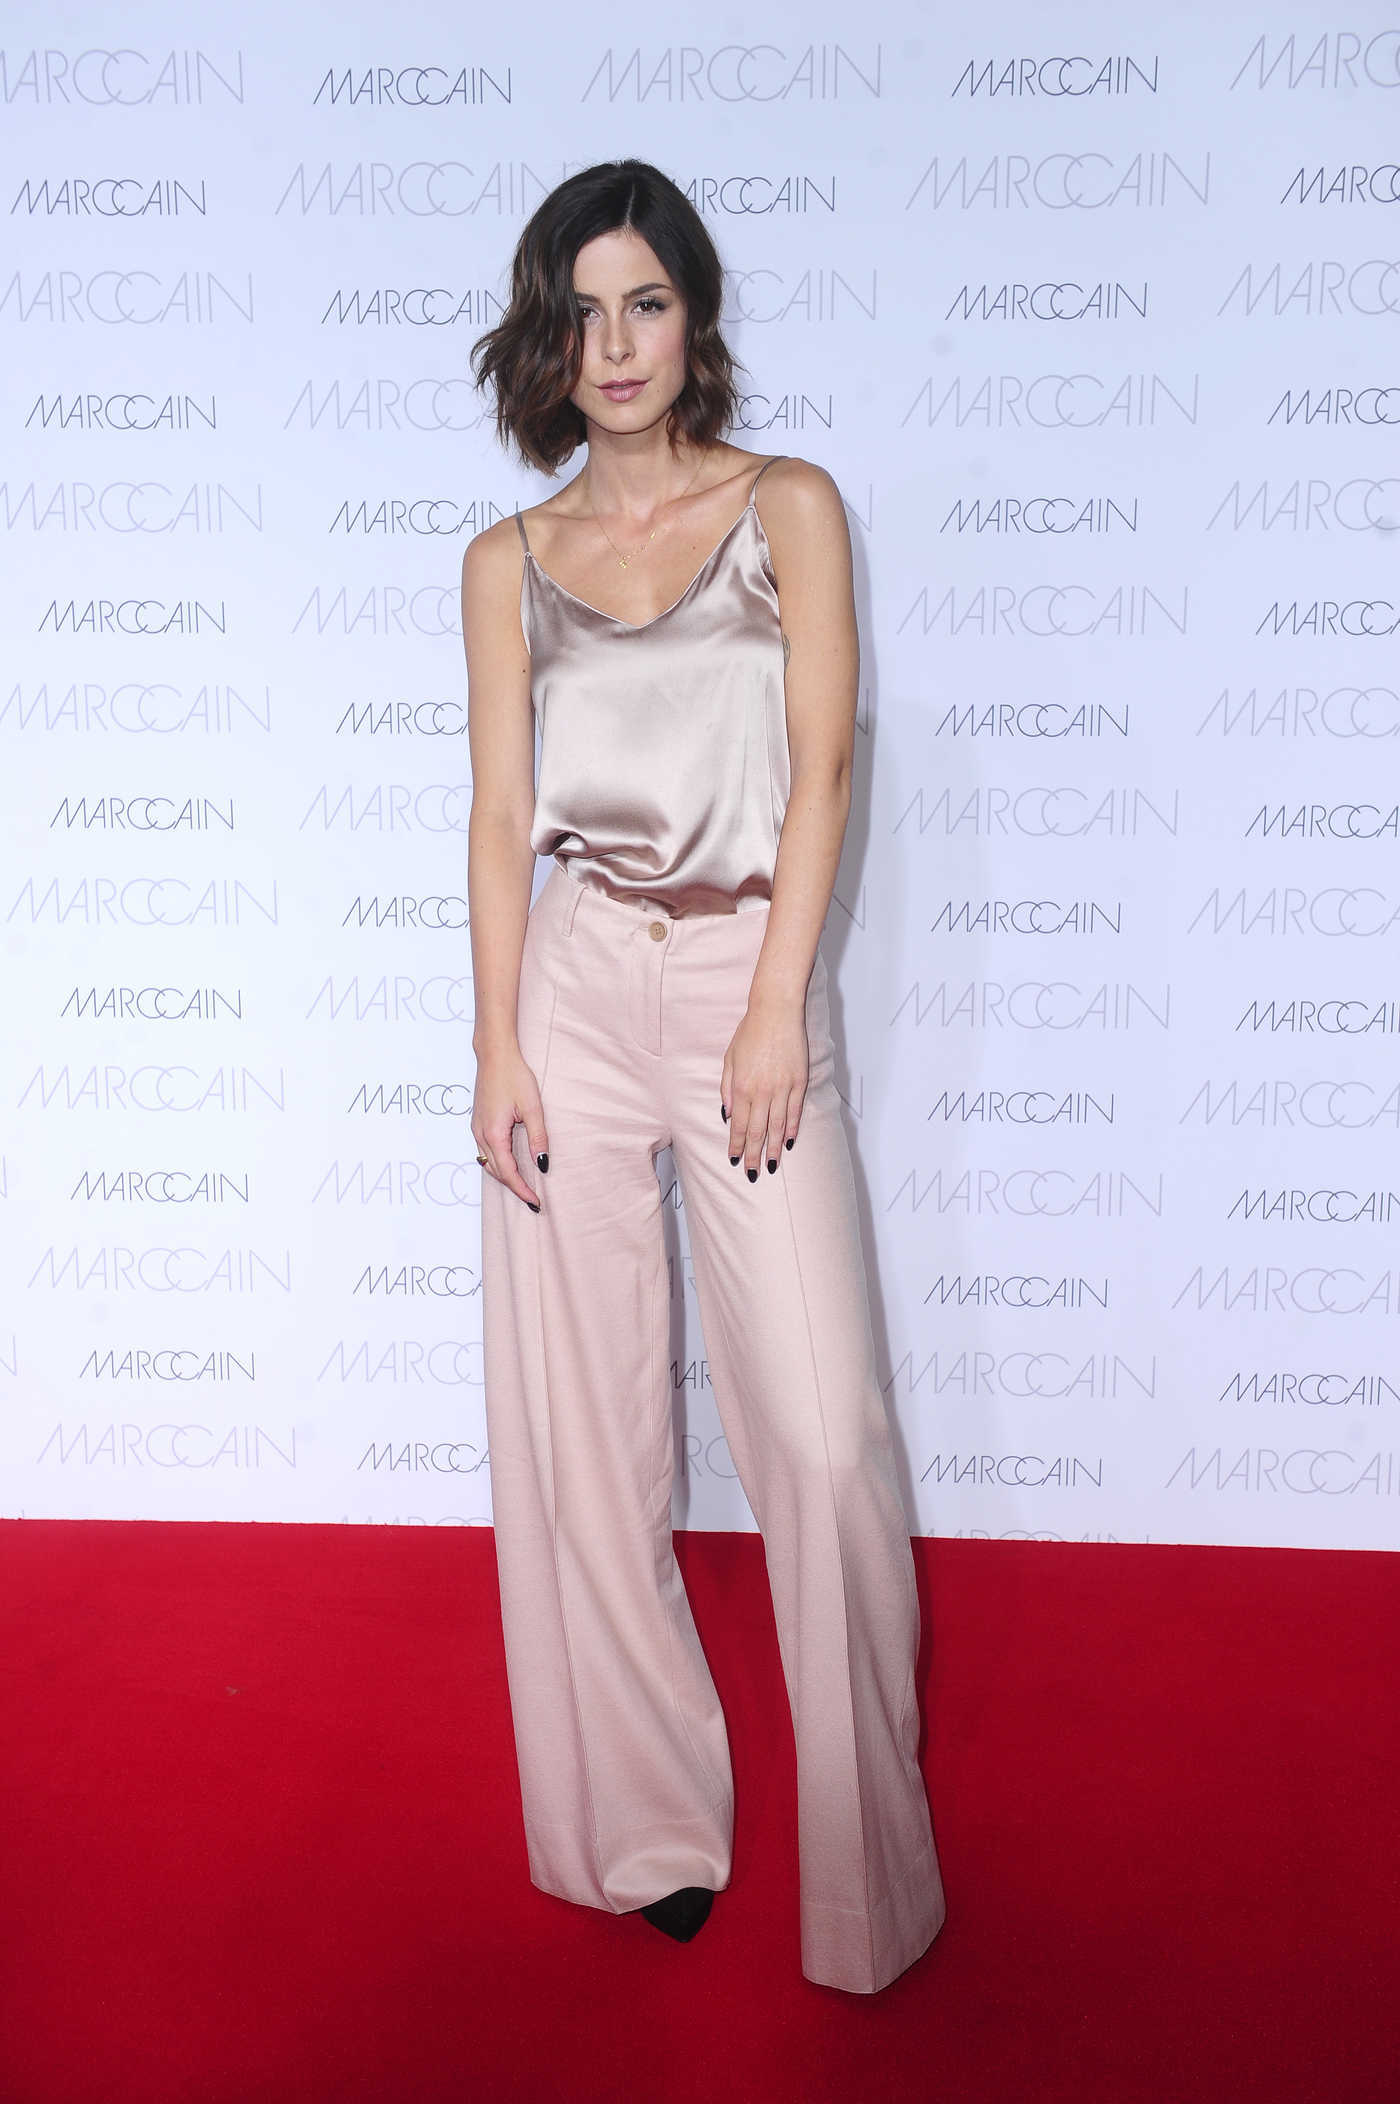 Lena Meyer-Landrut at the Marc Cain Show During Mercedes Benz Fashion Week in Berlin 06/28/2016